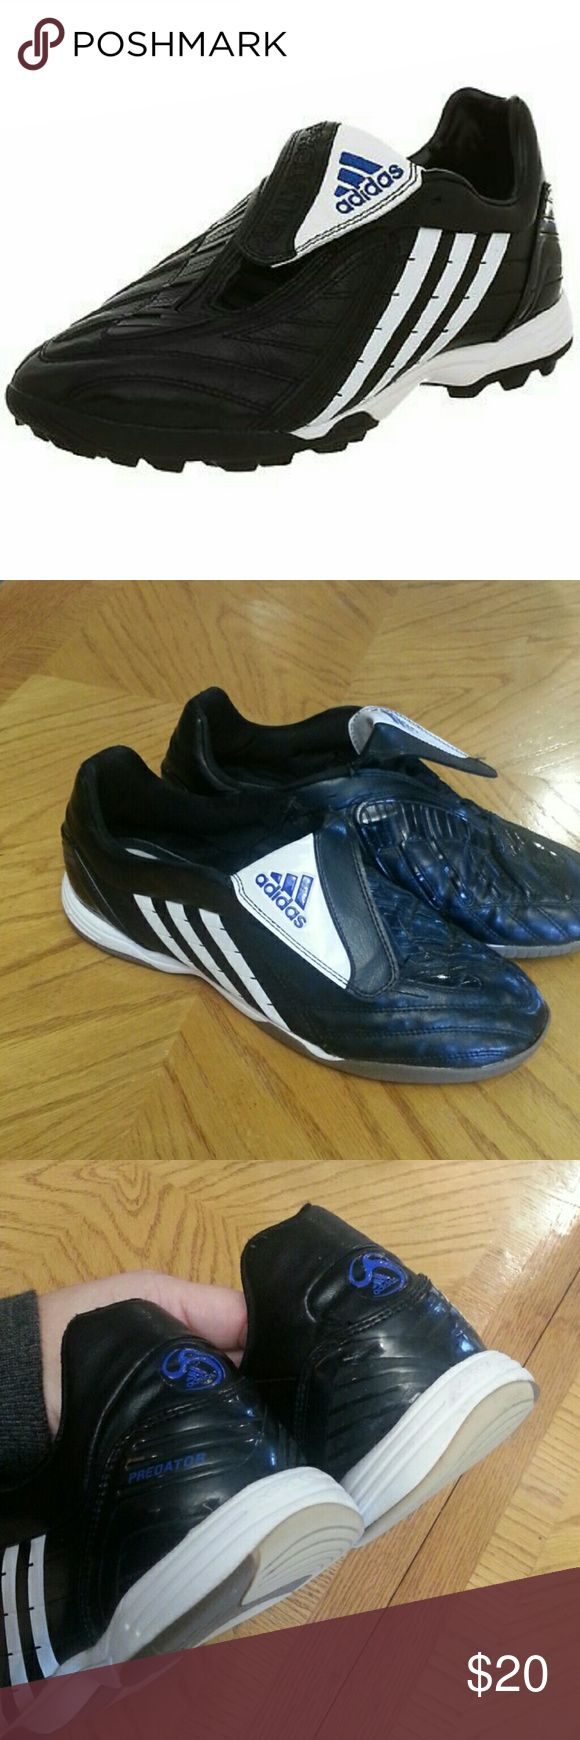 Adidas Predator Men's basketball Shoes Gently used condition. Size 10 Adidas Shoes Athletic Shoes